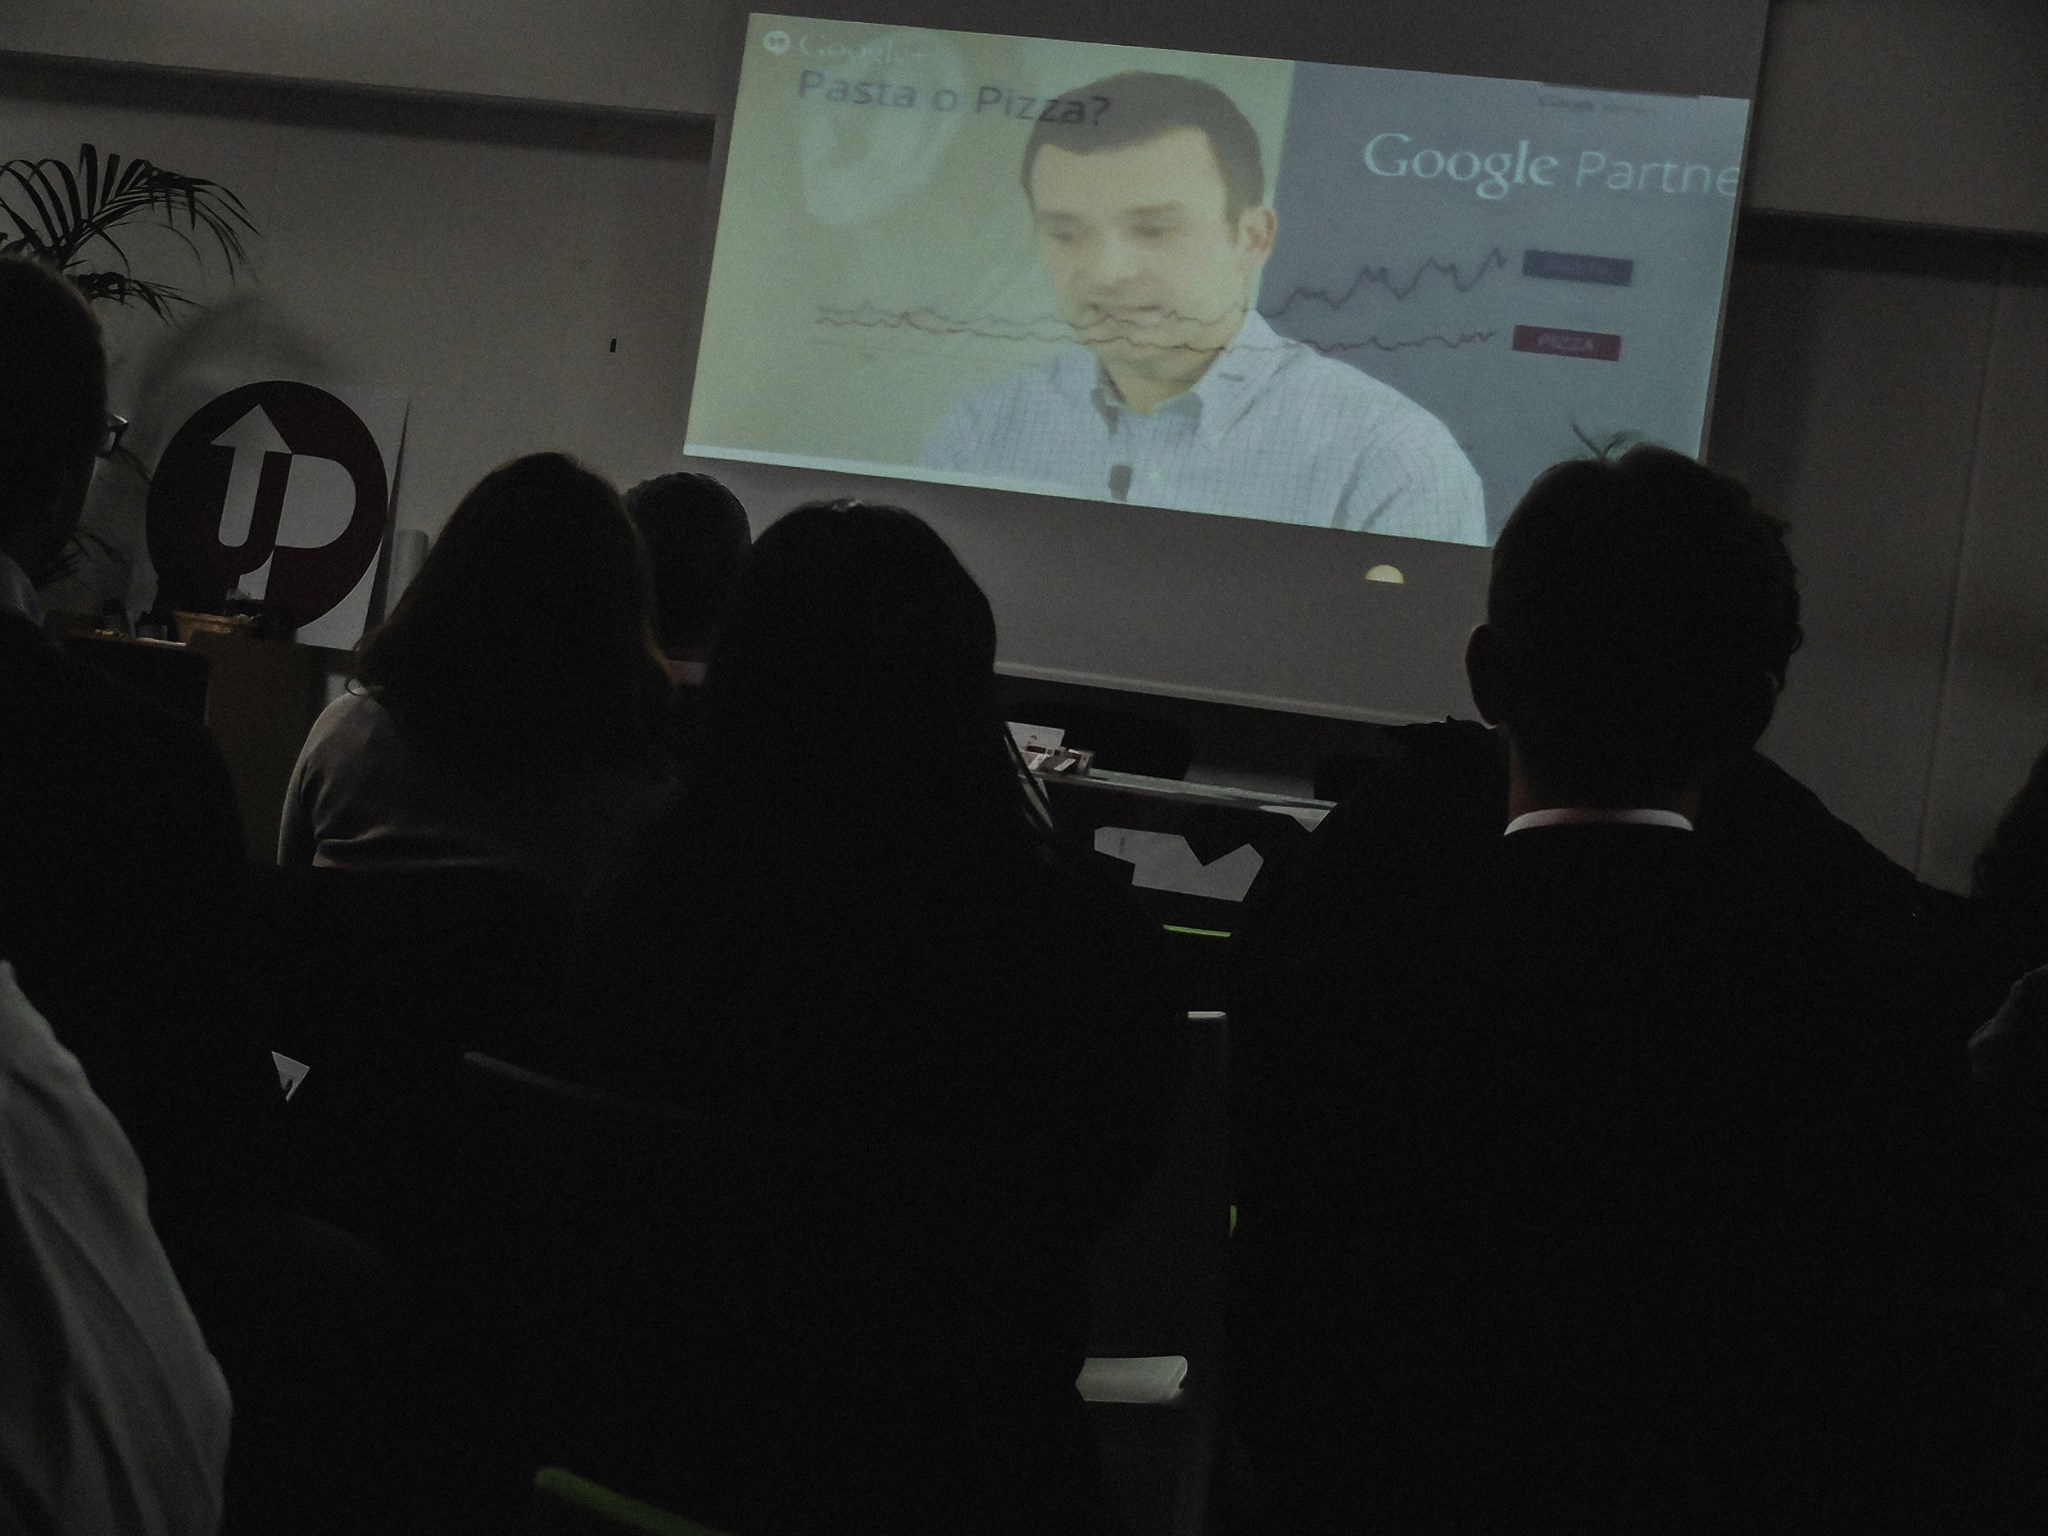 Un momento dell\'evento promosso da UPtimization e Google